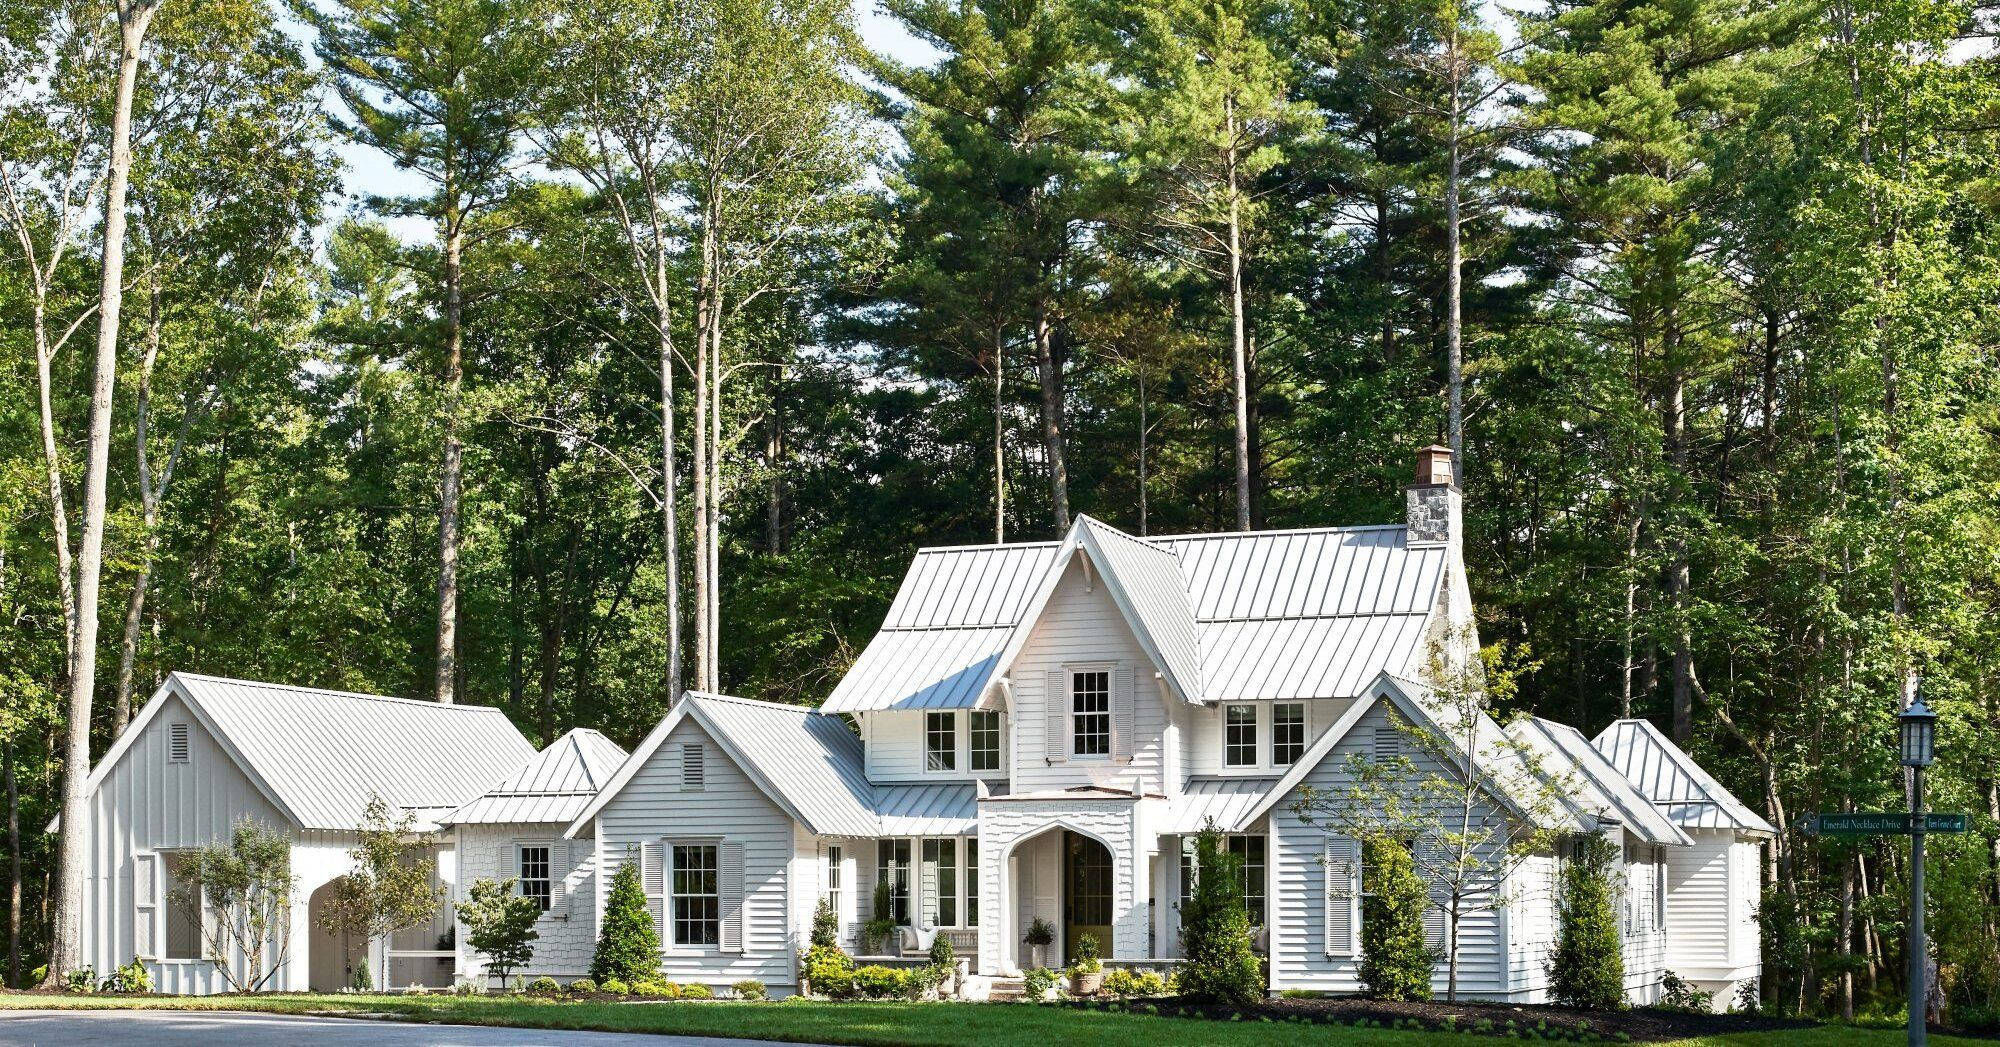 2020 Southern Living Idea House A Dreamy Blue Ridge Mountain Hideaway In 2020 Southern Living Homes House Mountain House Decor